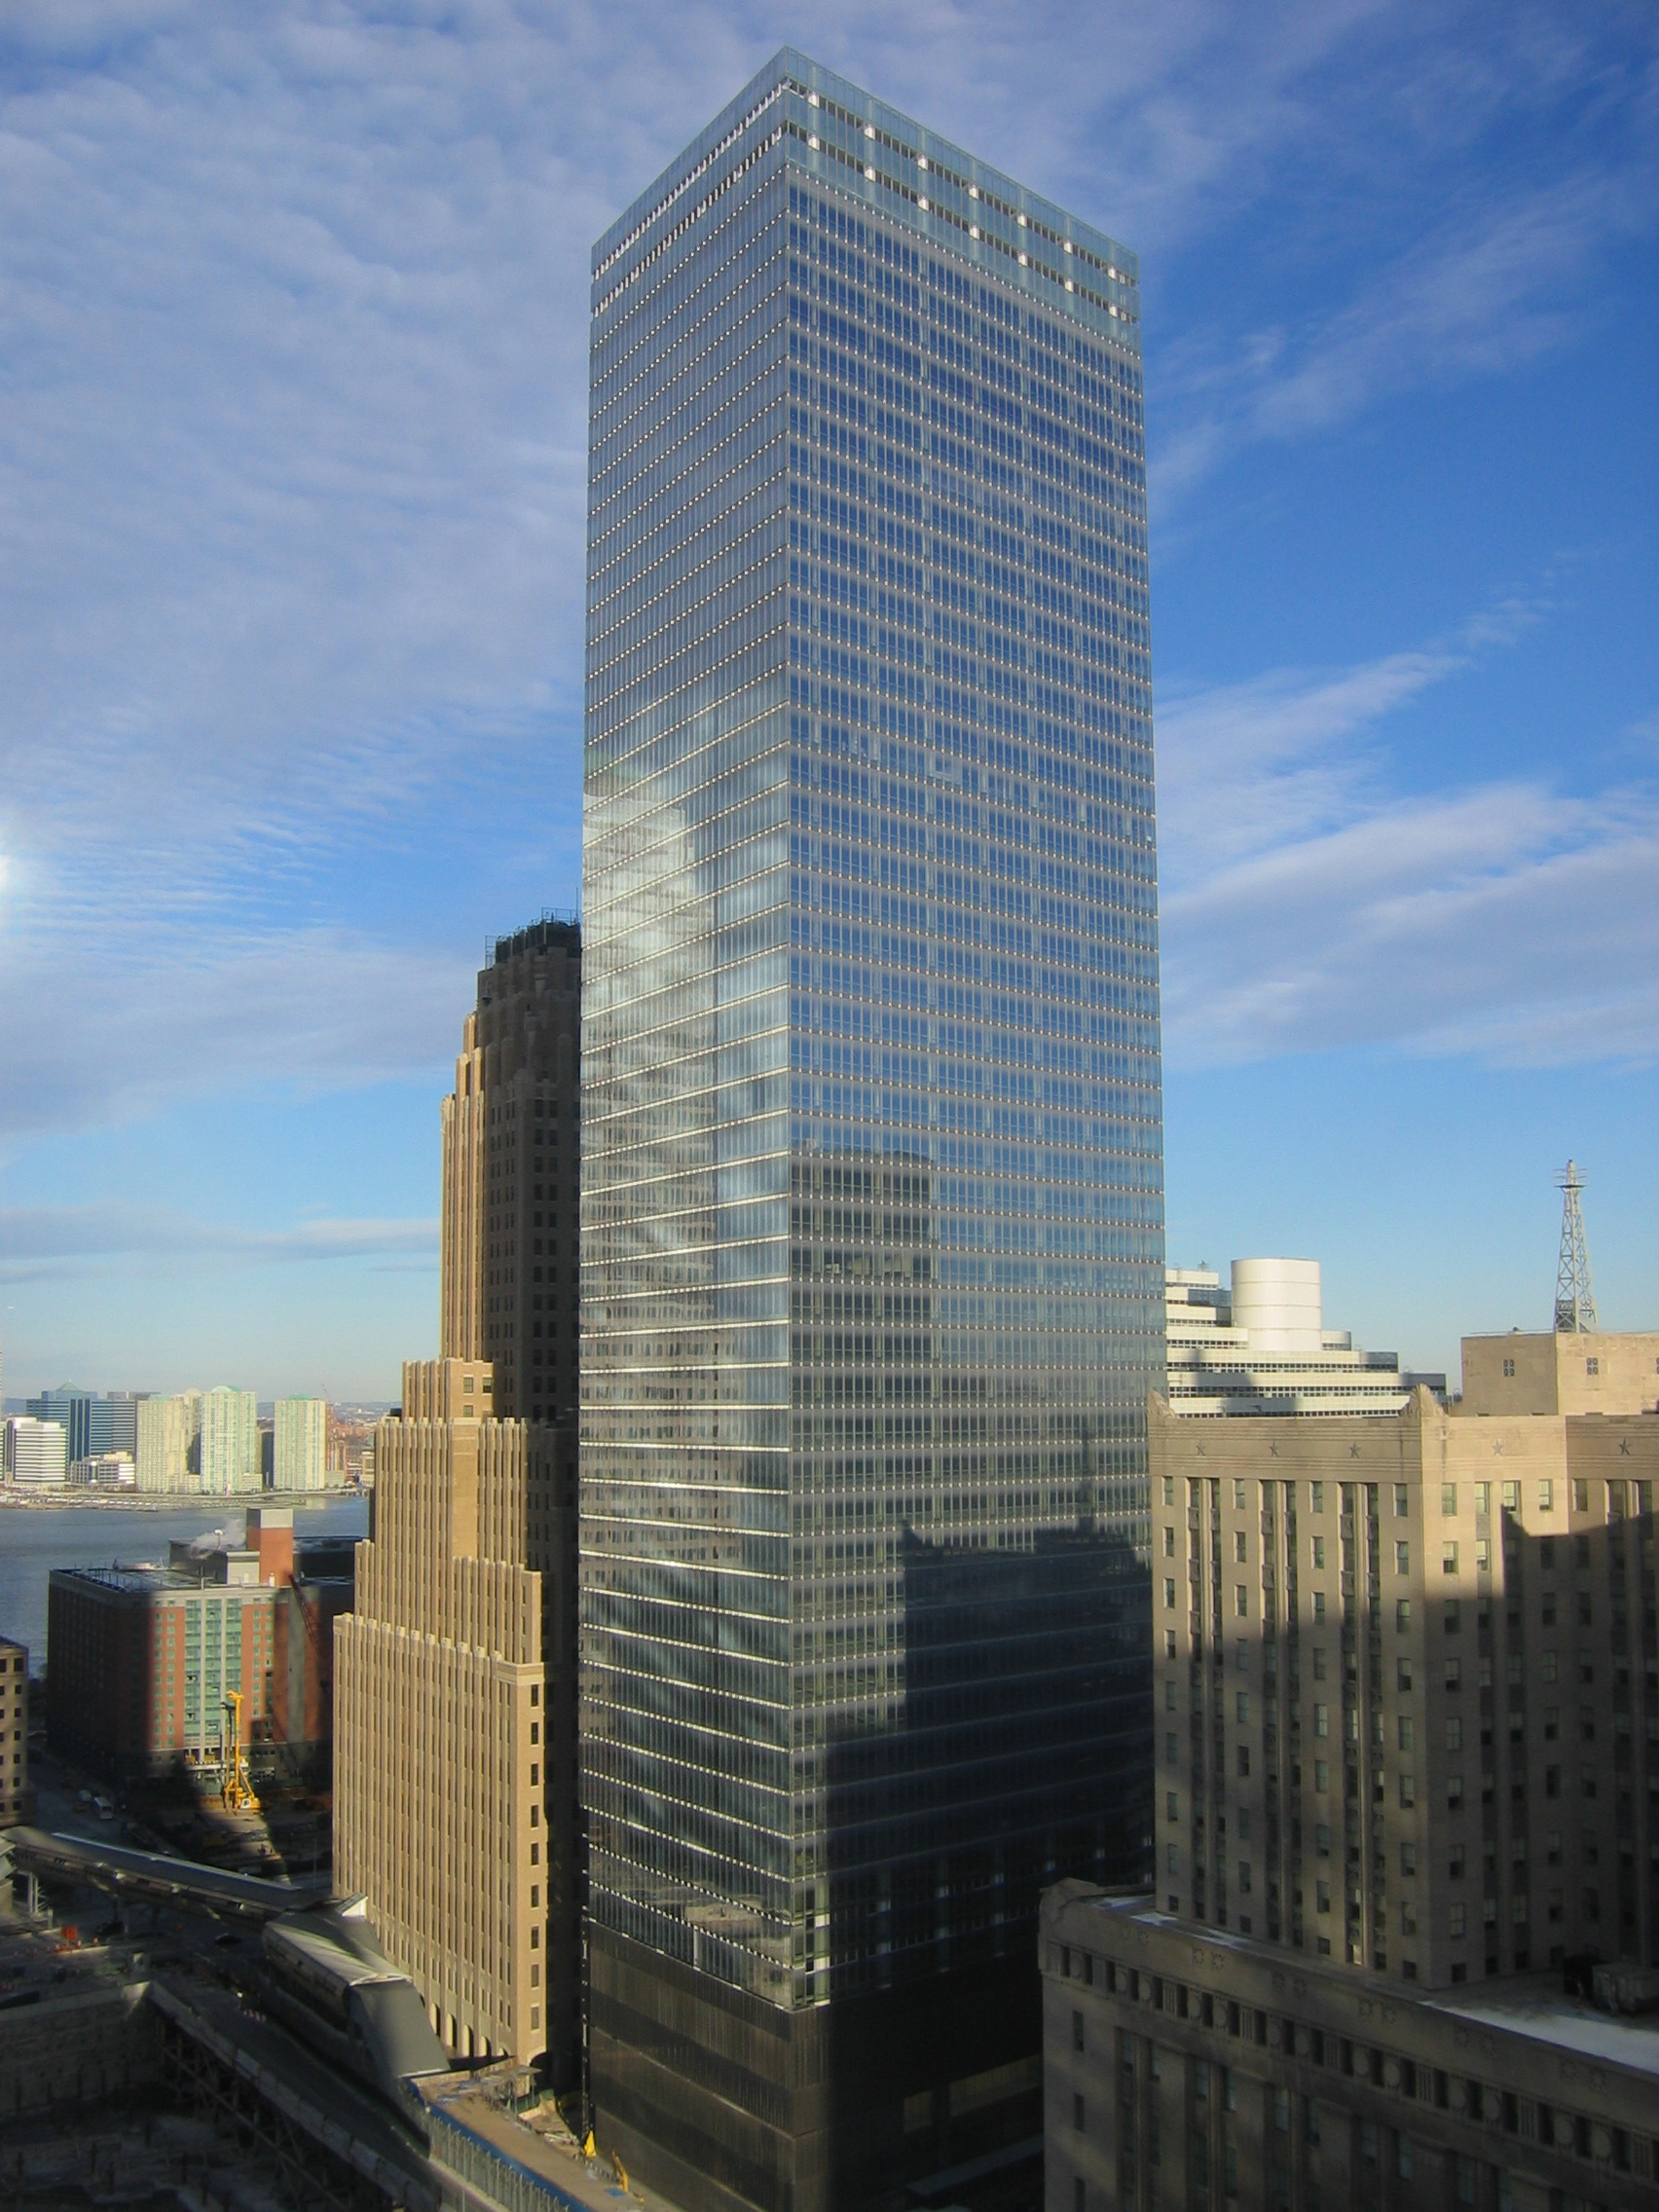 The new, 52-story 7 World Trade Center.